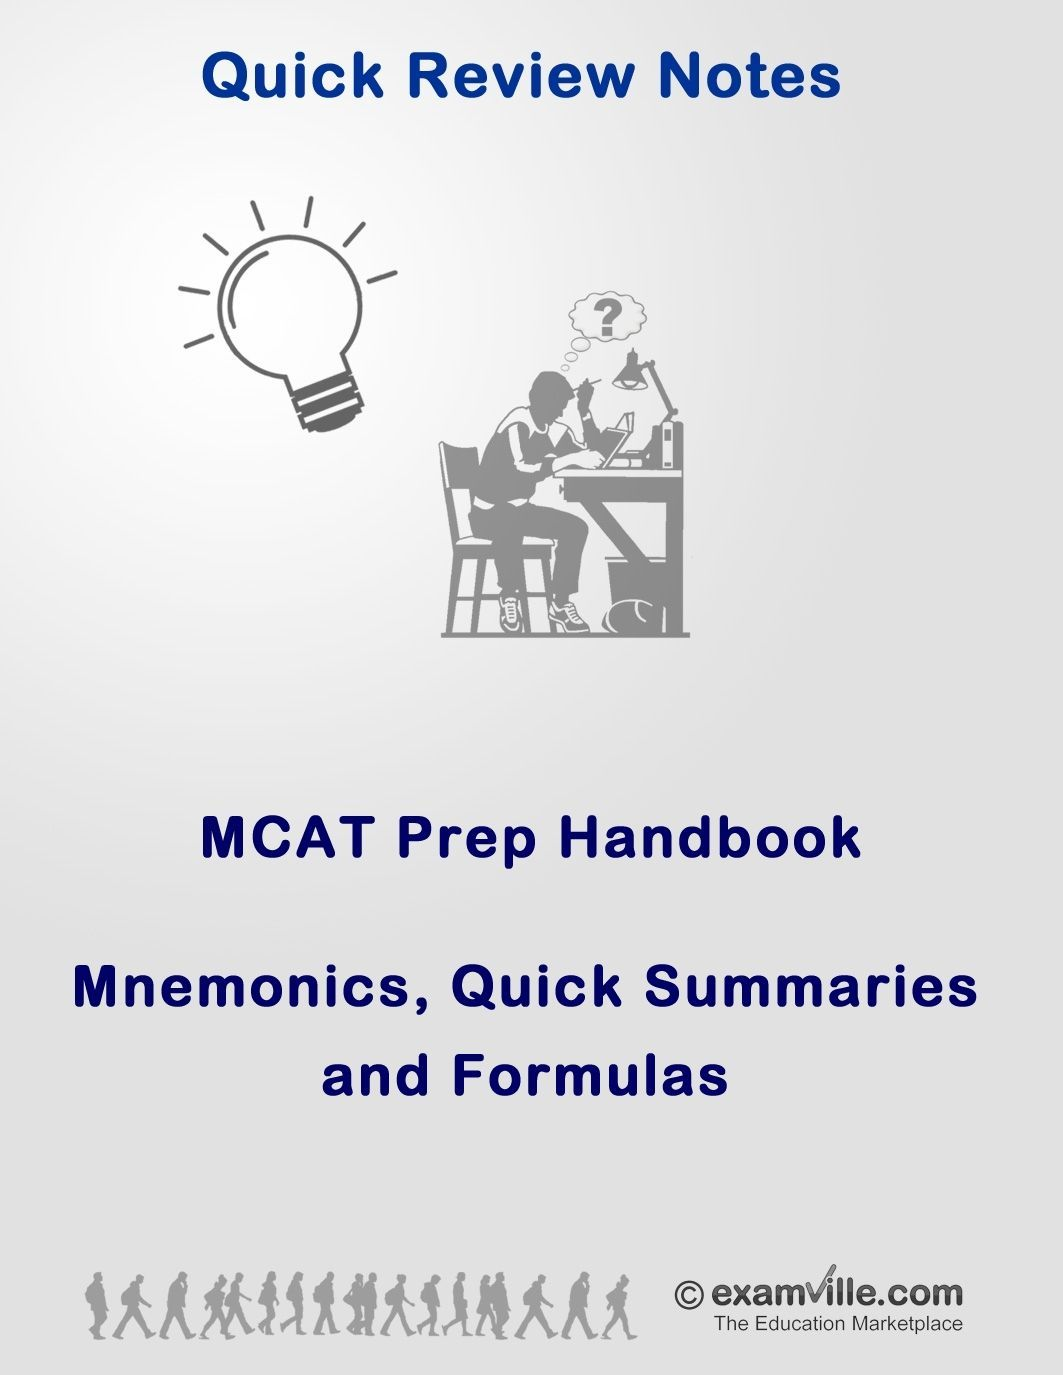 MCAT Handy Prep Handbook. Quick Review MCAT Review Notes for the ...